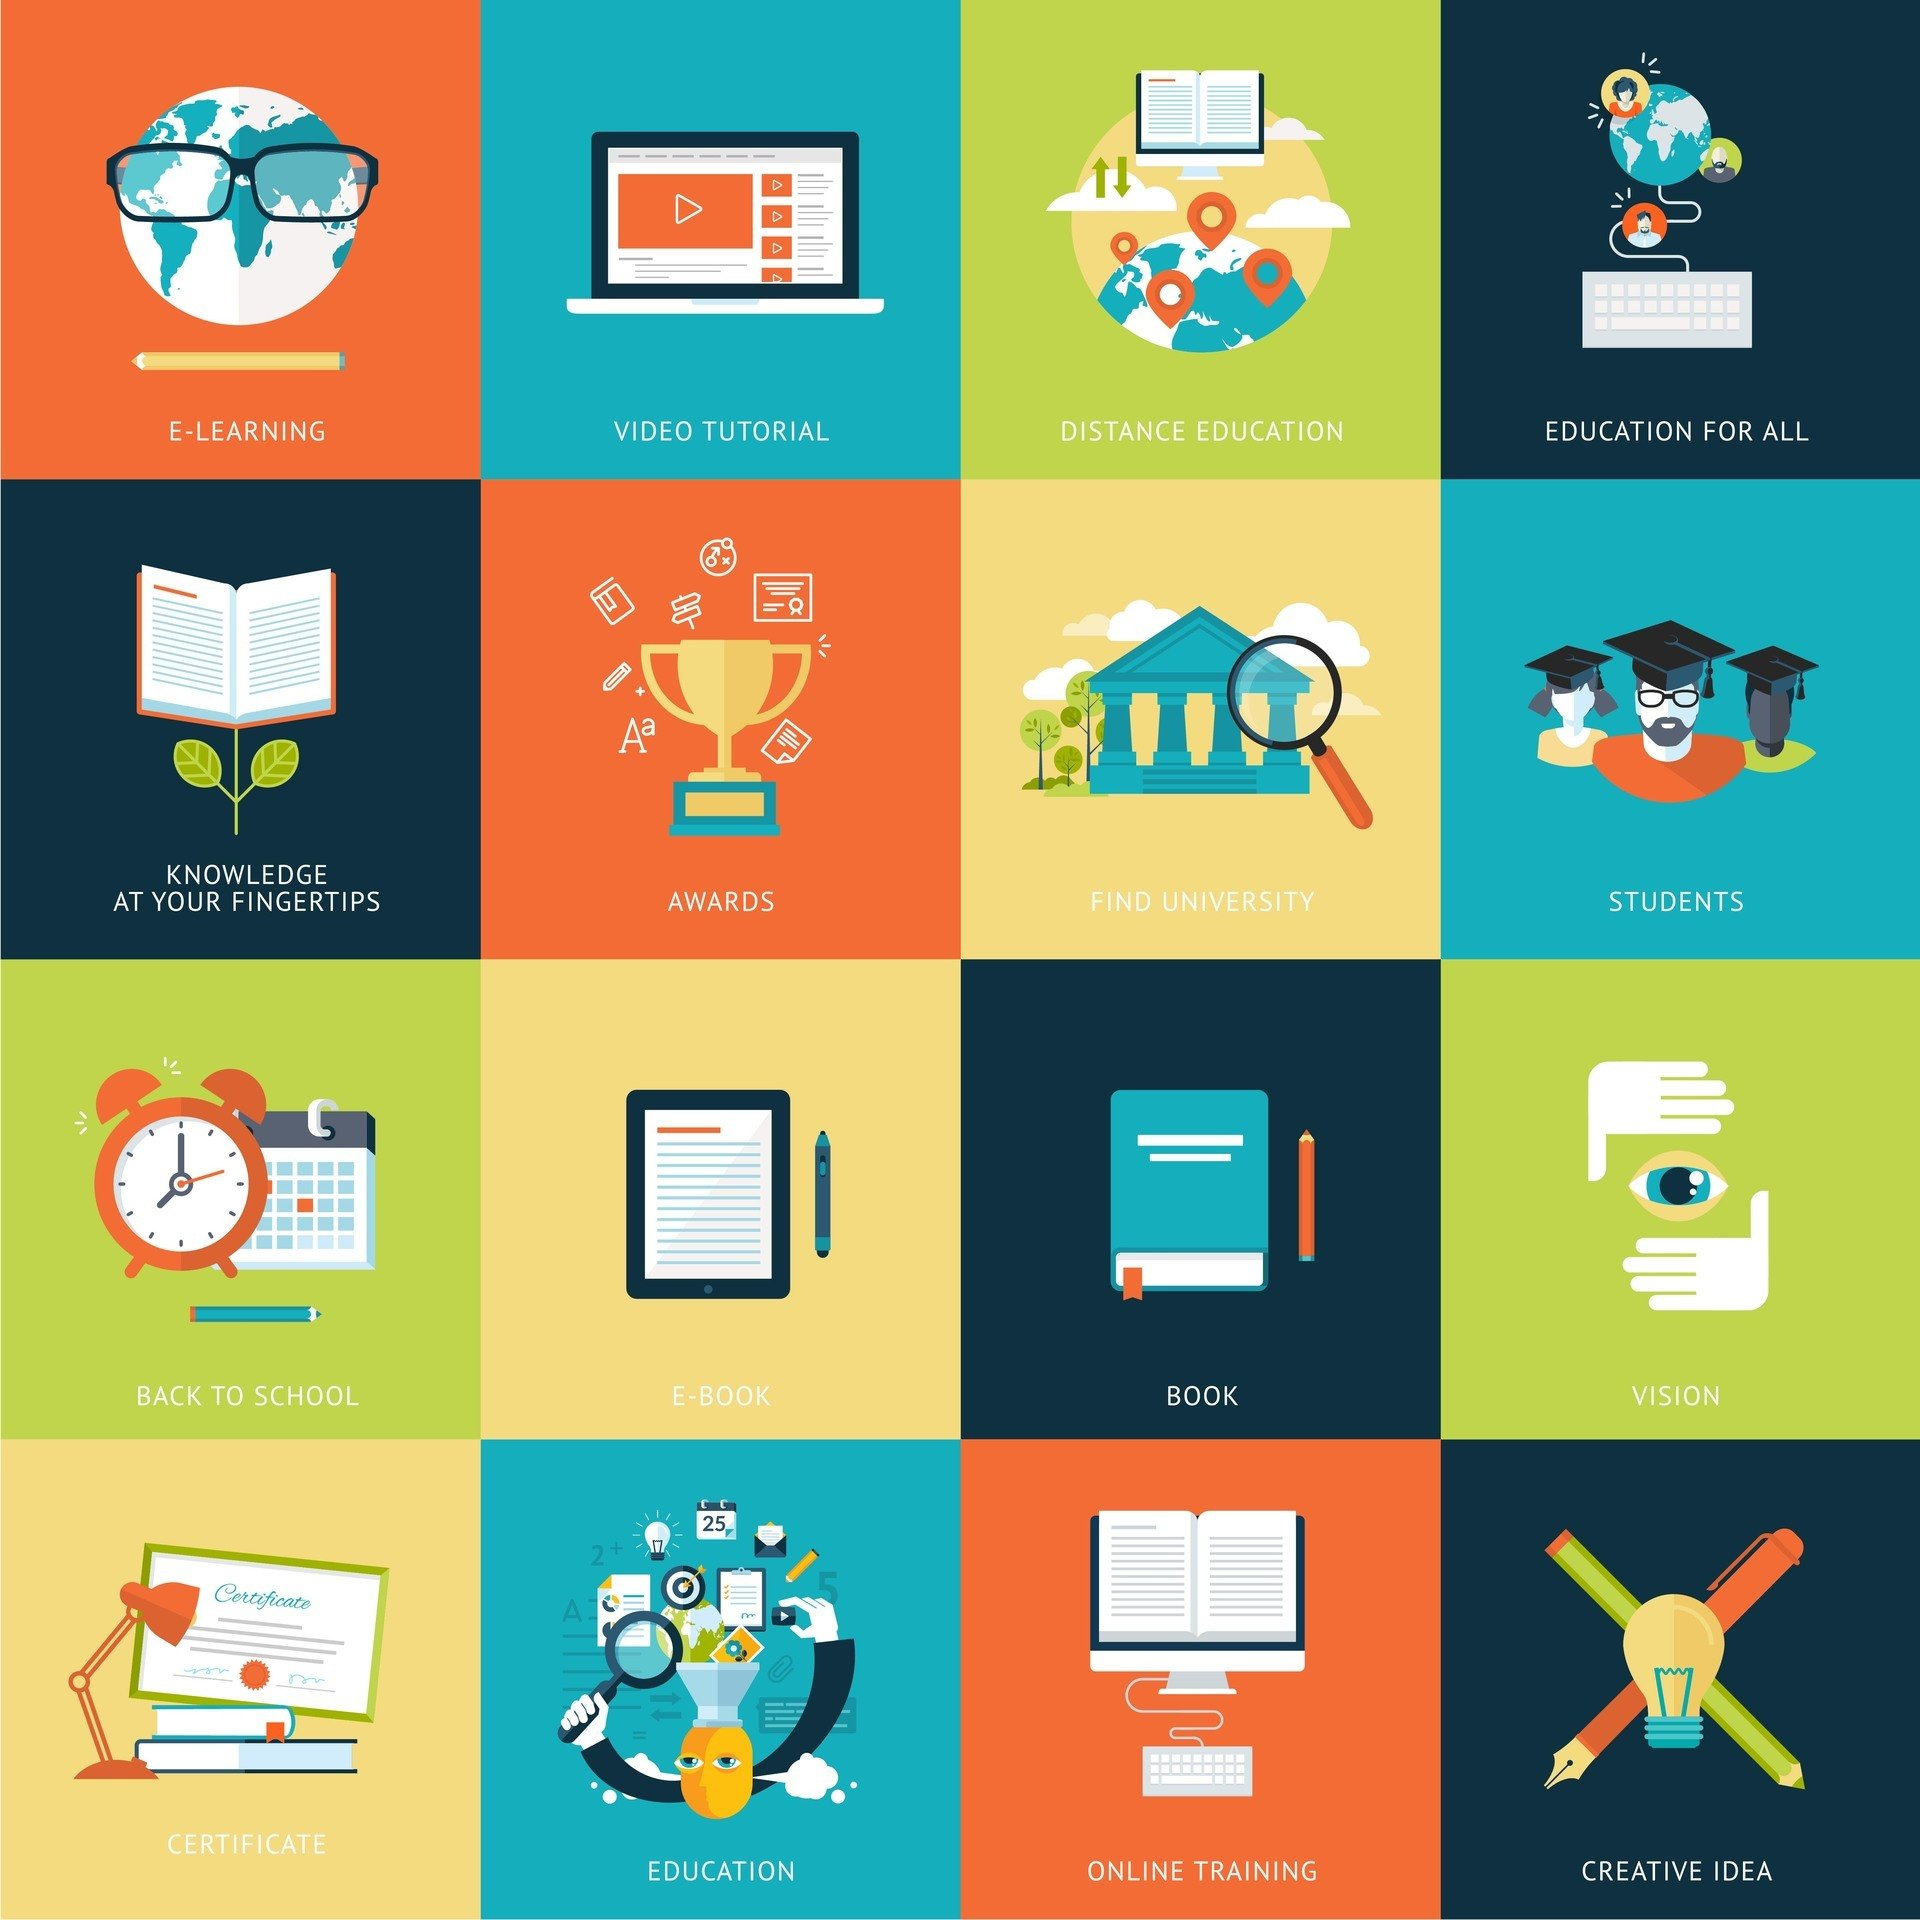 4 Benefits To Using Badges In Online Learning Elearning